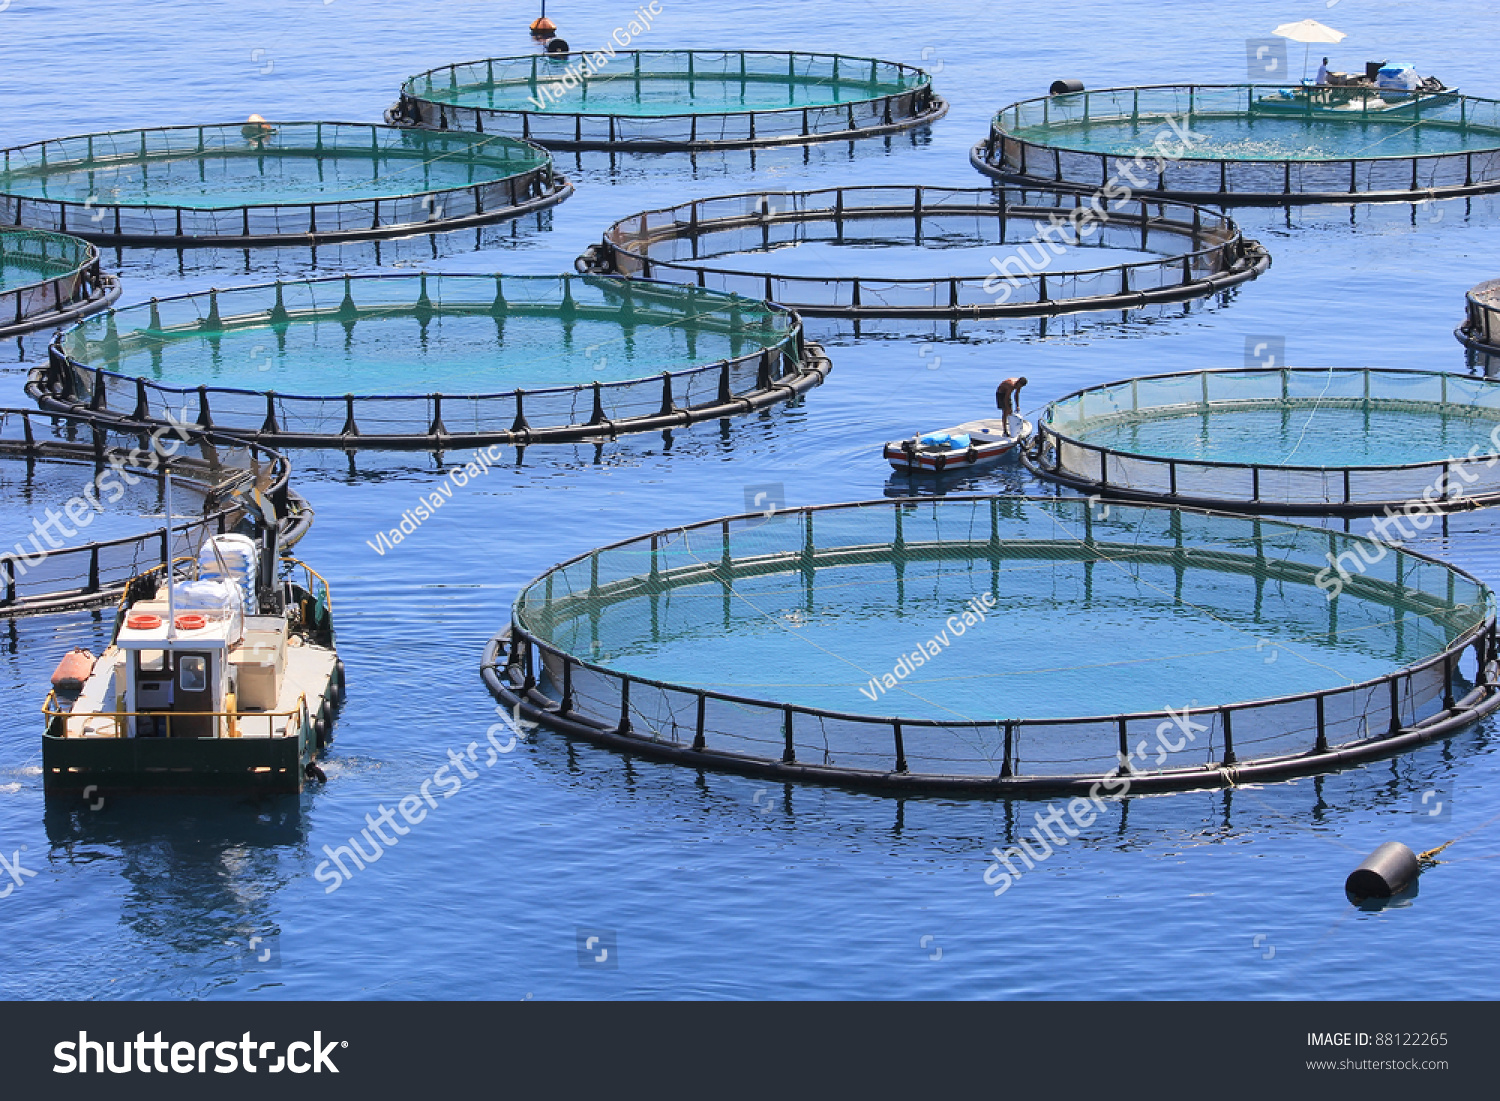 Fish farm stock photo 88122265 shutterstock for What is fish farming